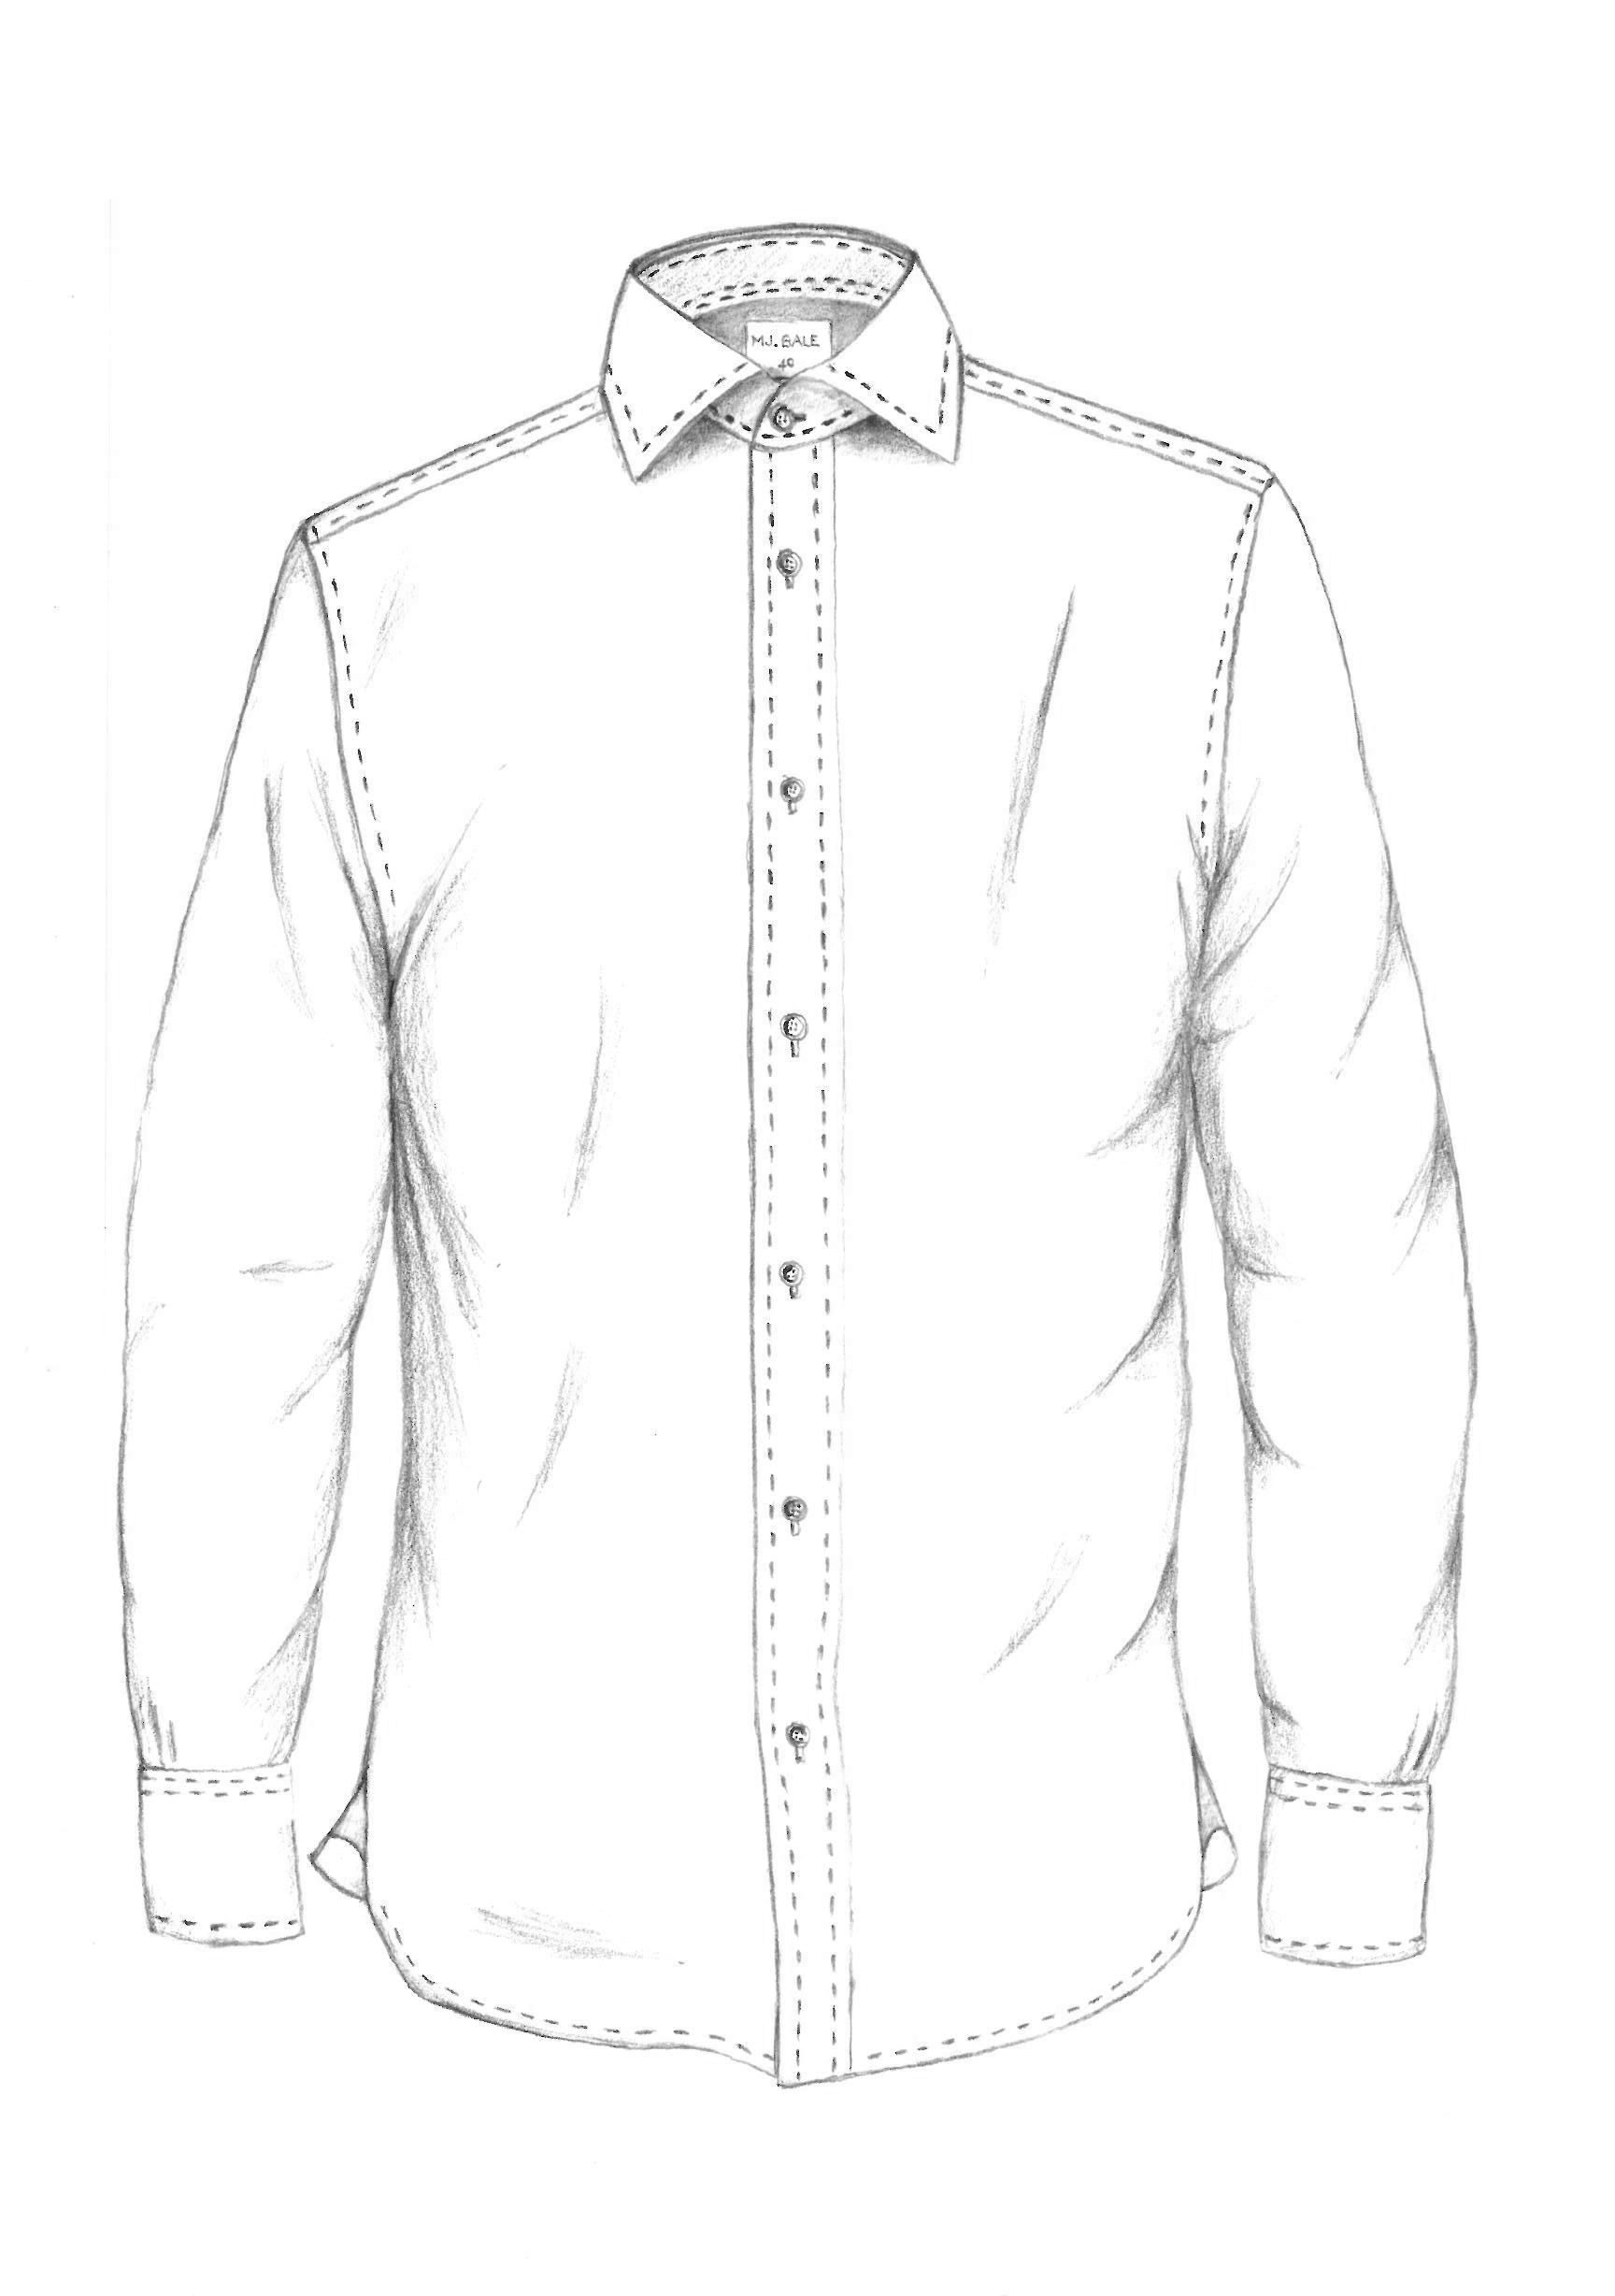 Button Up Collared Shirt Mj Bale Garment Sketches